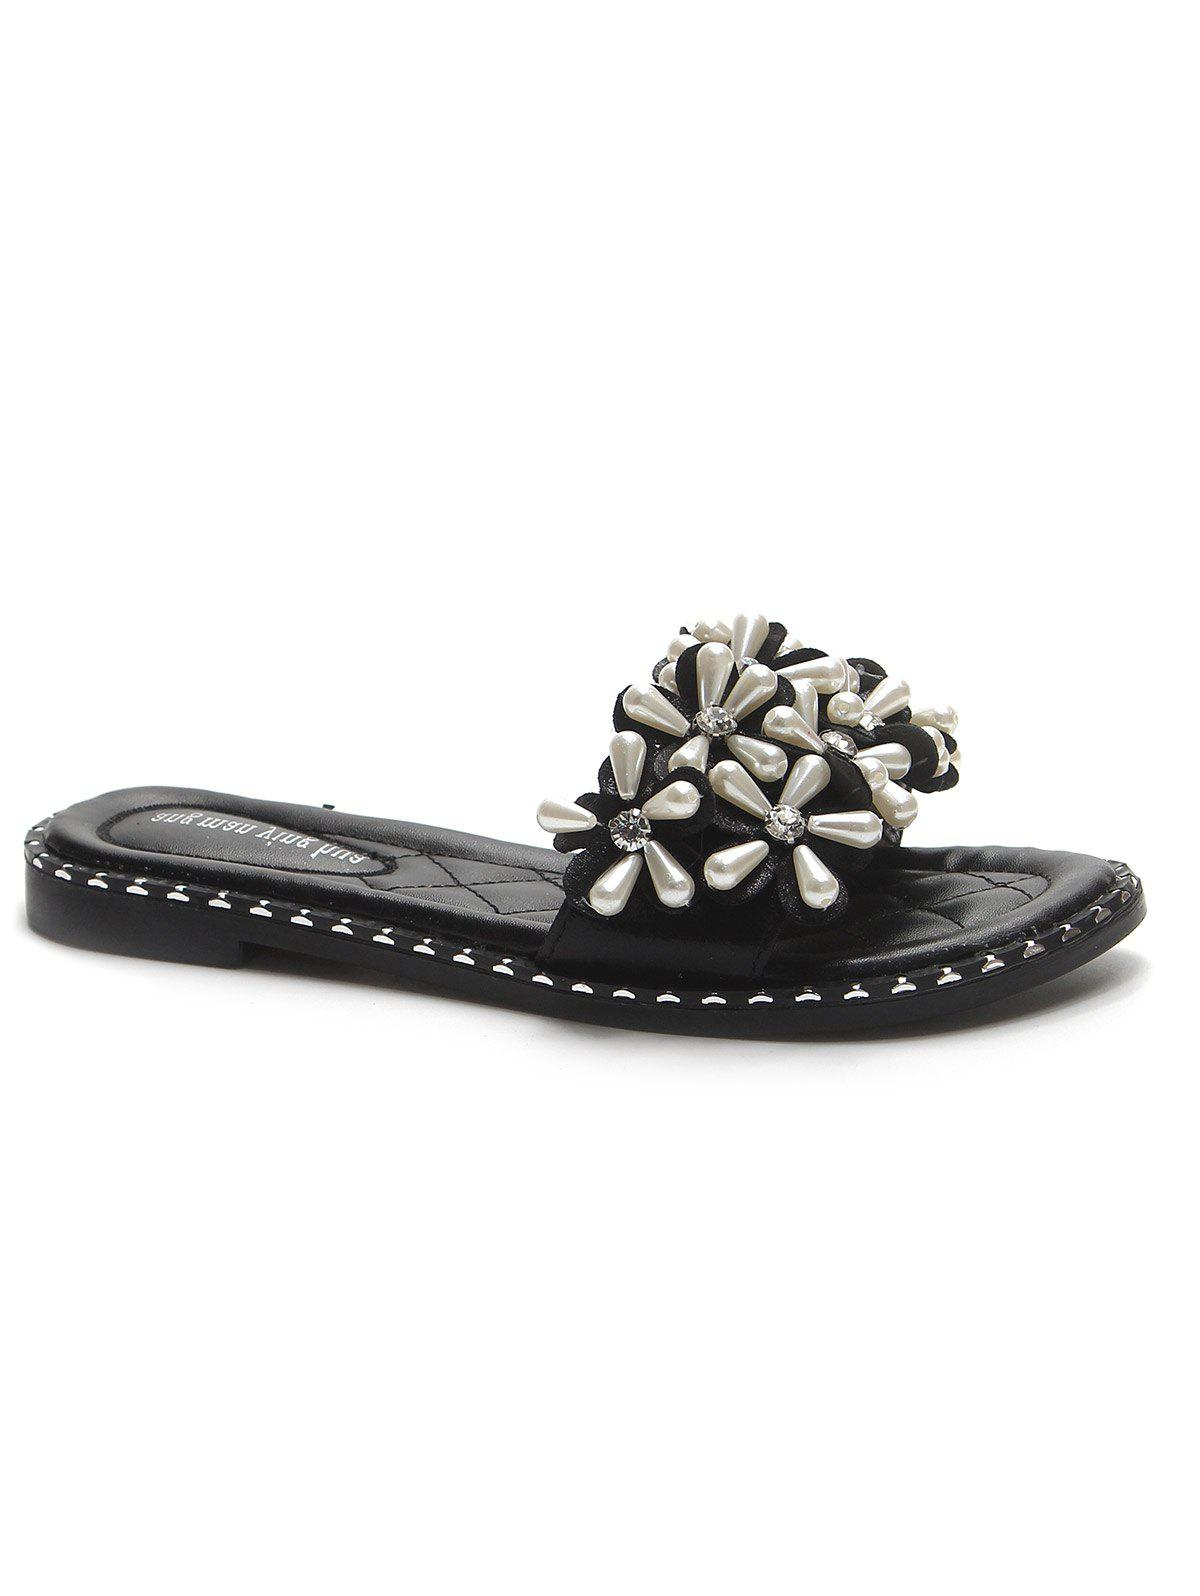 Casual Rhinestone Embellished Slides for Holiday - BLACK 36